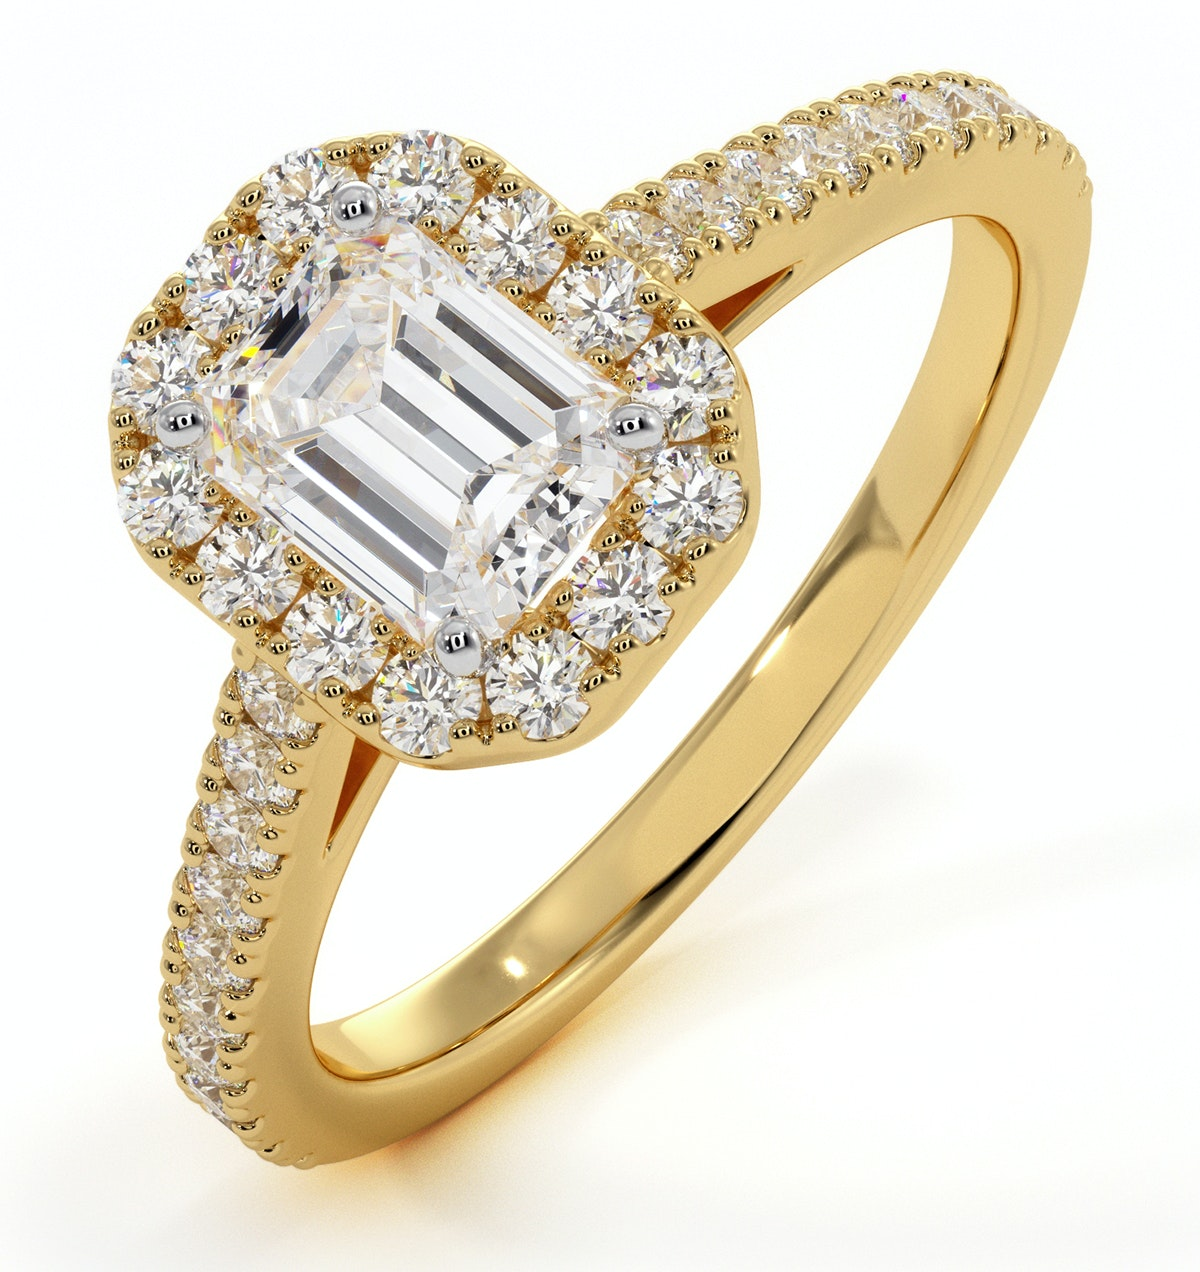 Annabelle GIA Diamond Halo Engagement Ring in 18K Gold 1.35ct G/SI2